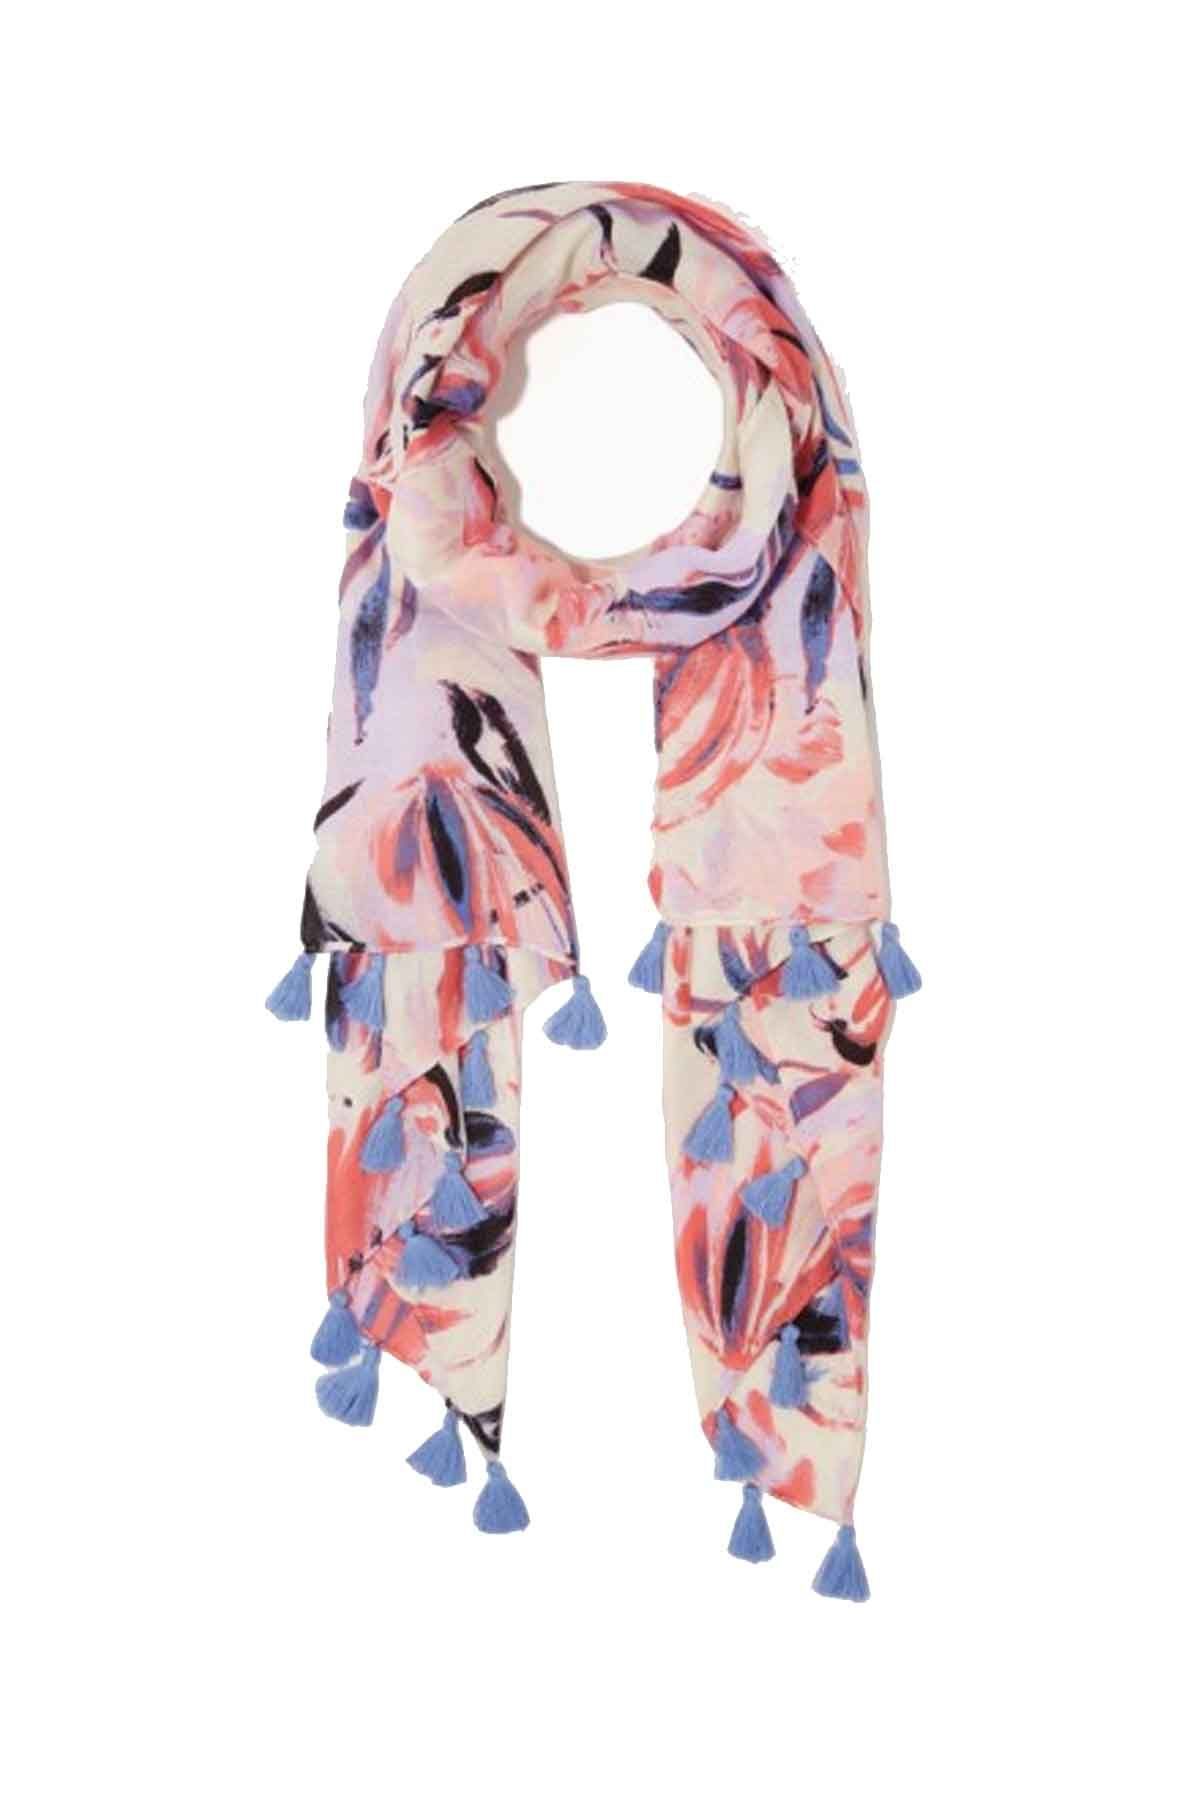 10 Gorgeous Scarves for Spring 10 Gorgeous Scarves for Spring new images